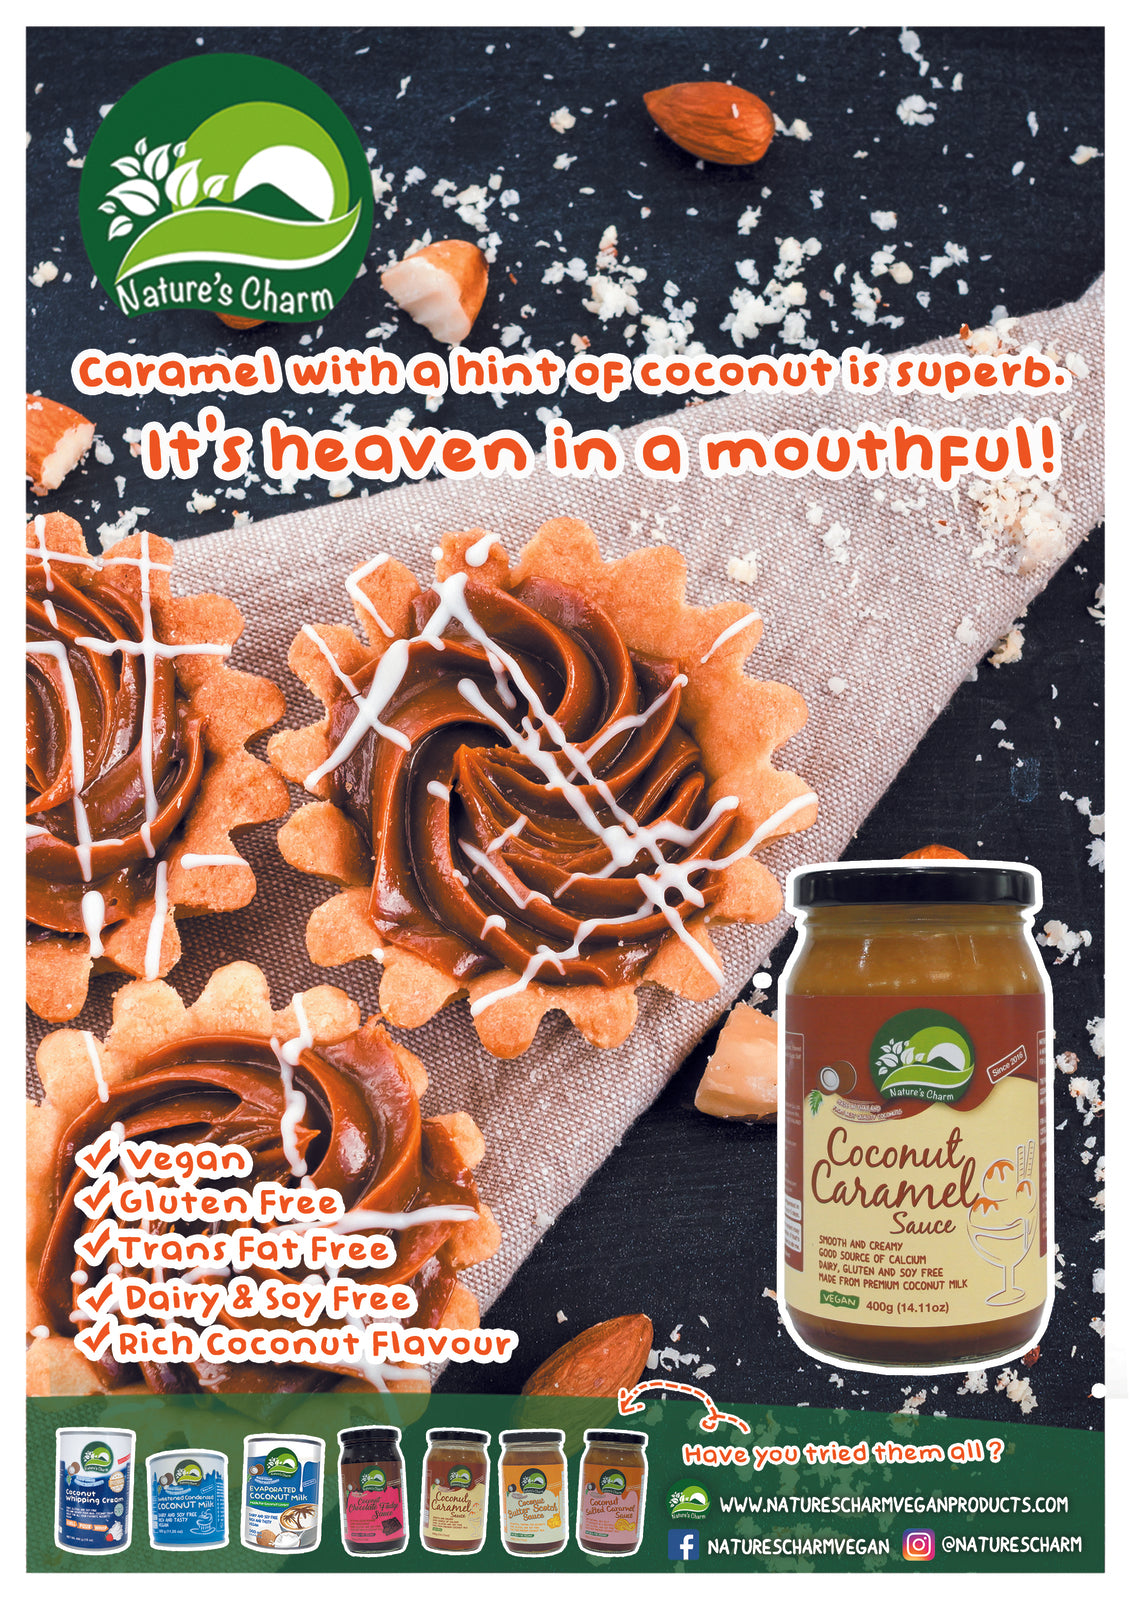 Natures Charm Coconut Butterscotch Sauce 400g